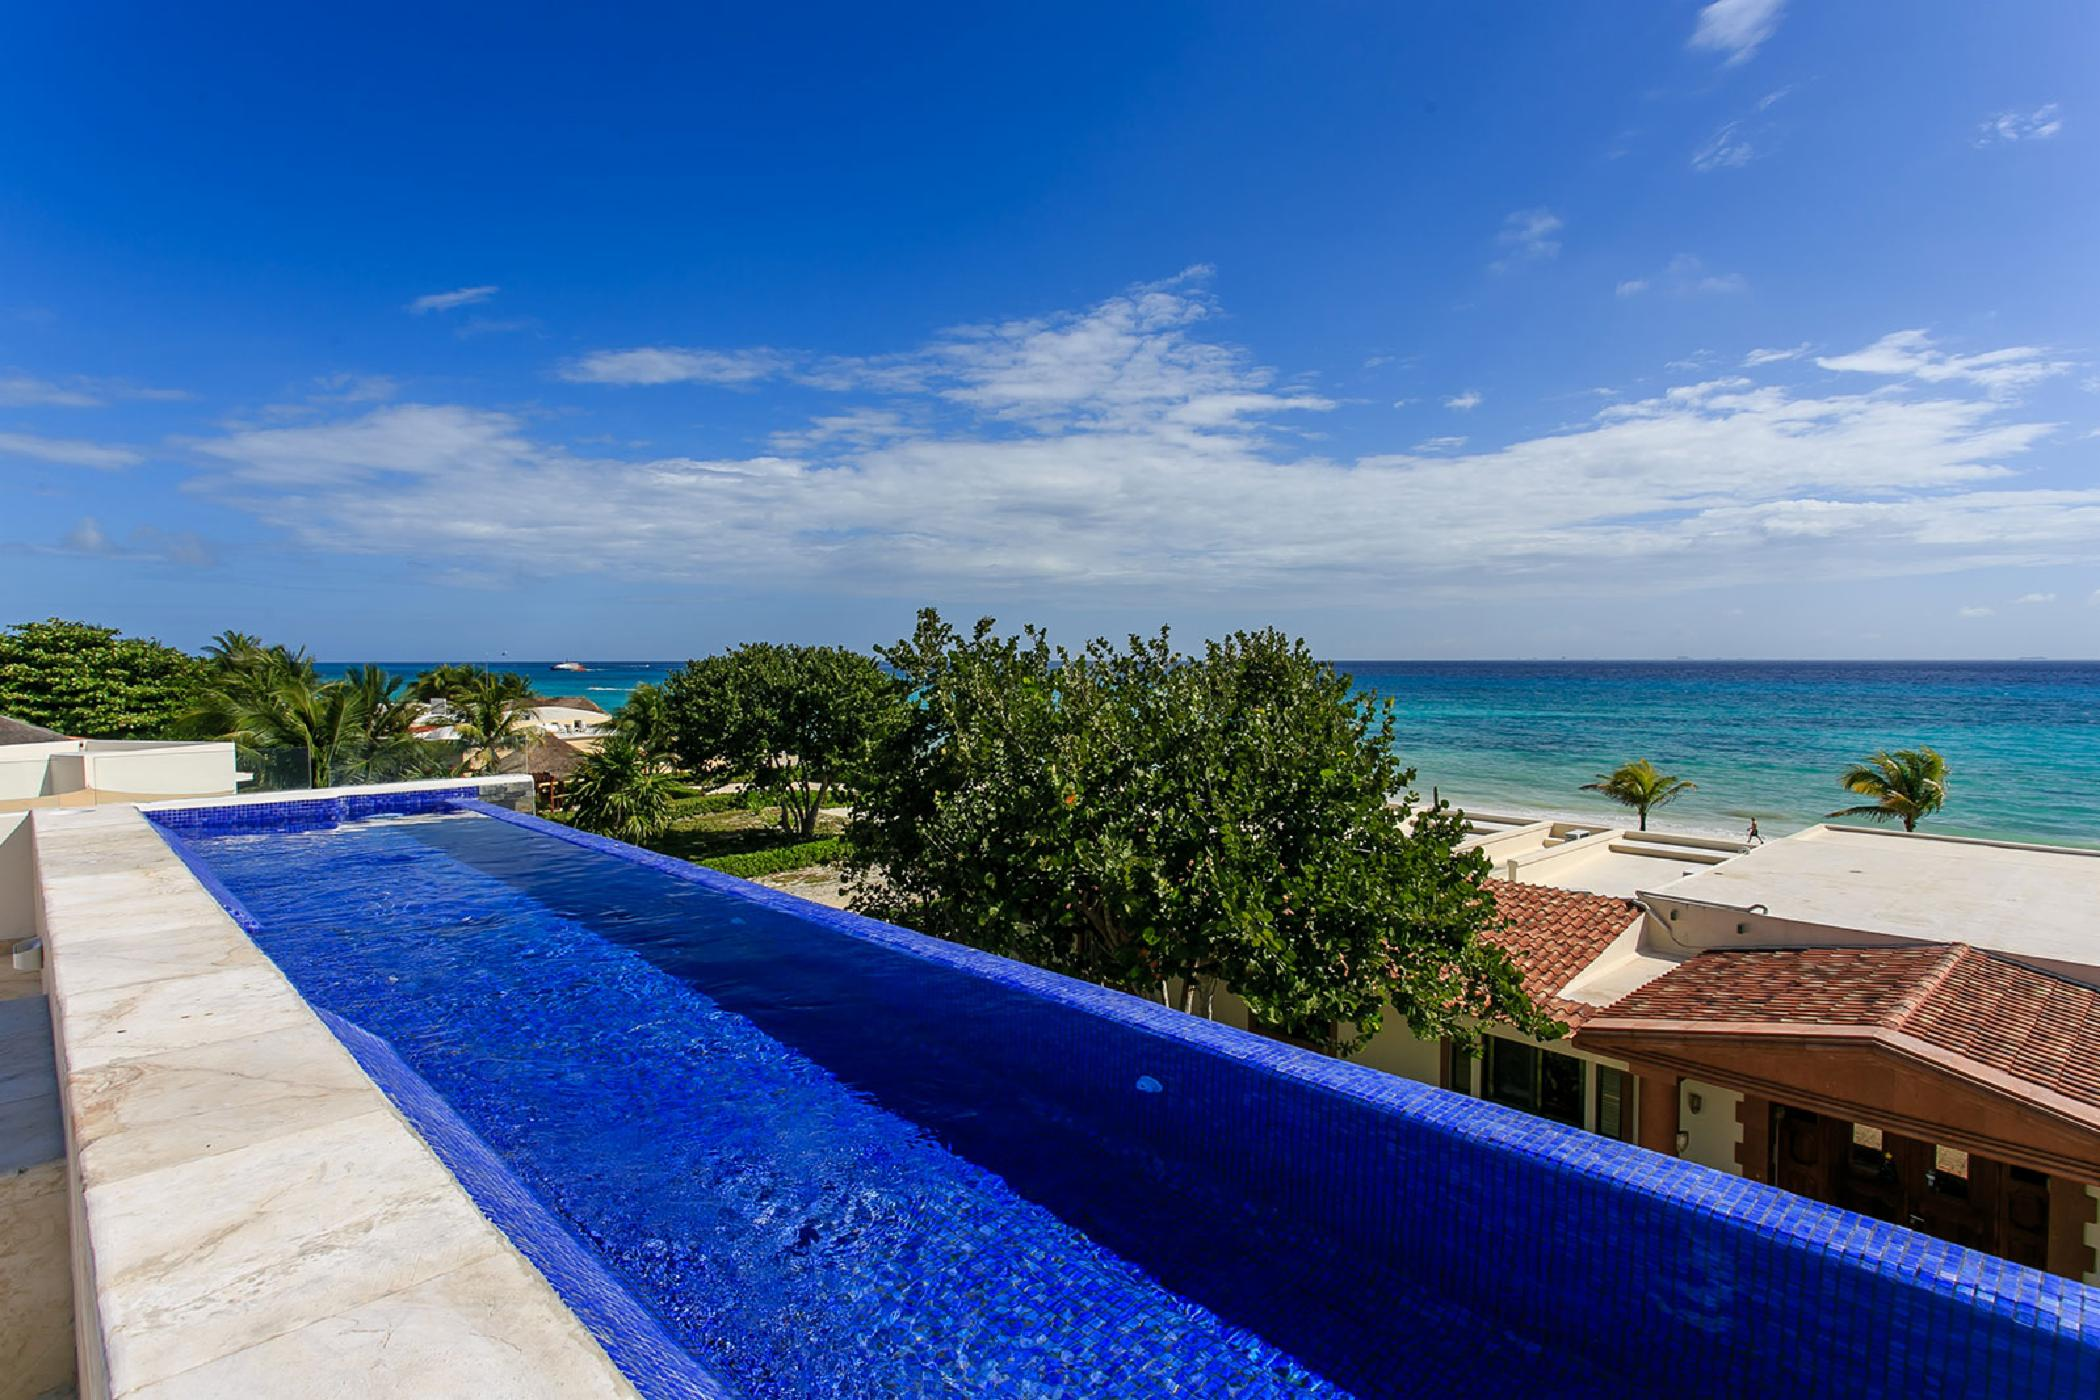 Private and secure Playa del Carmen 6 BDR villa; double pools, jacuzzi, panoramic ocean views, family game room